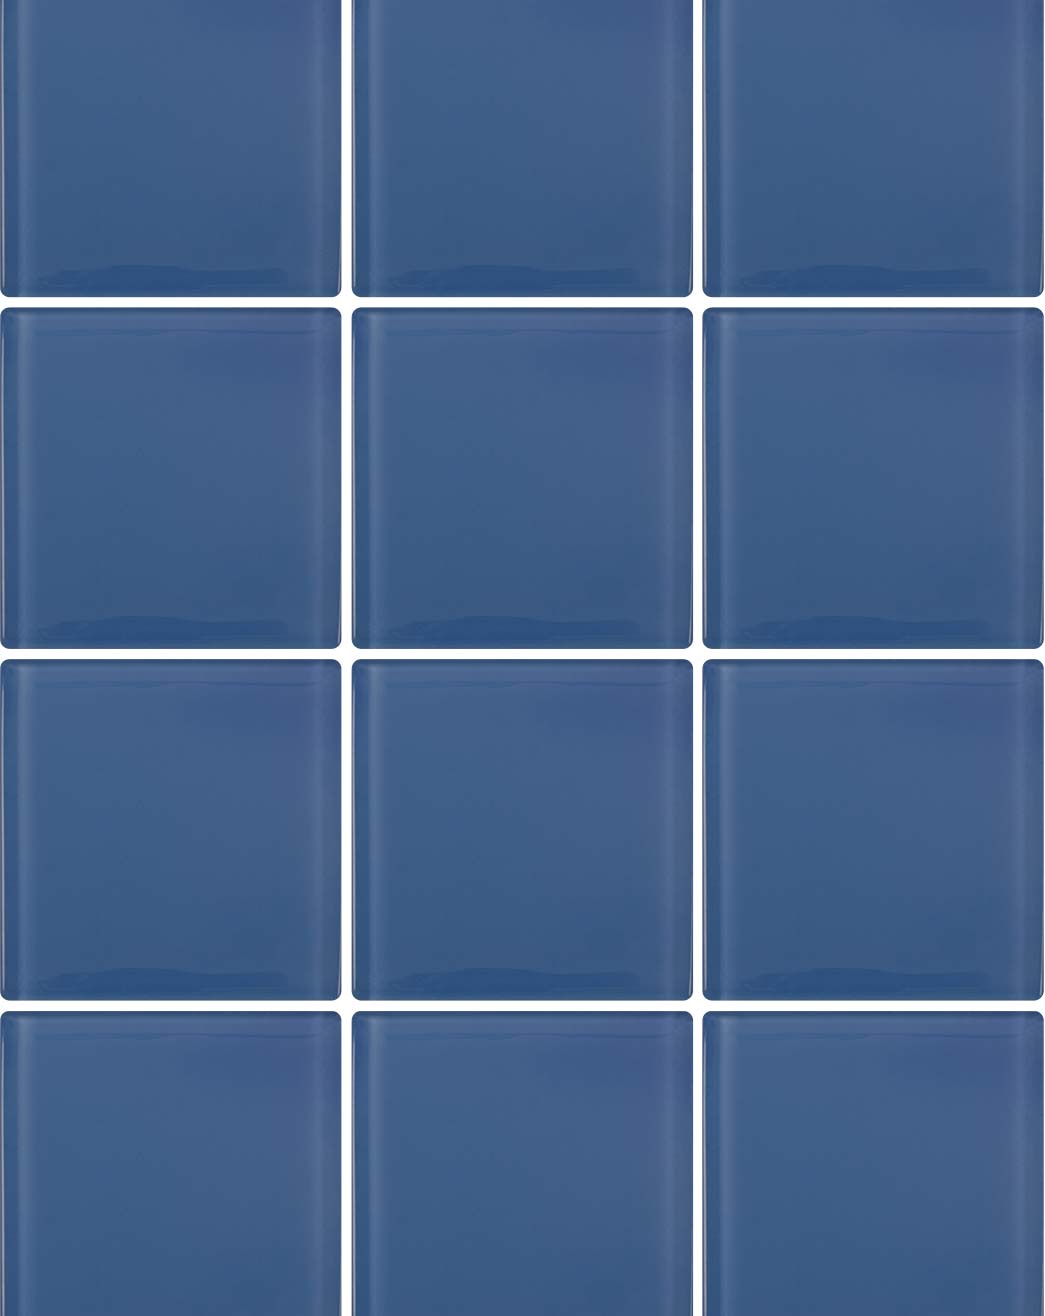 Mirage Electric Blue Bathroom Tiles Direct